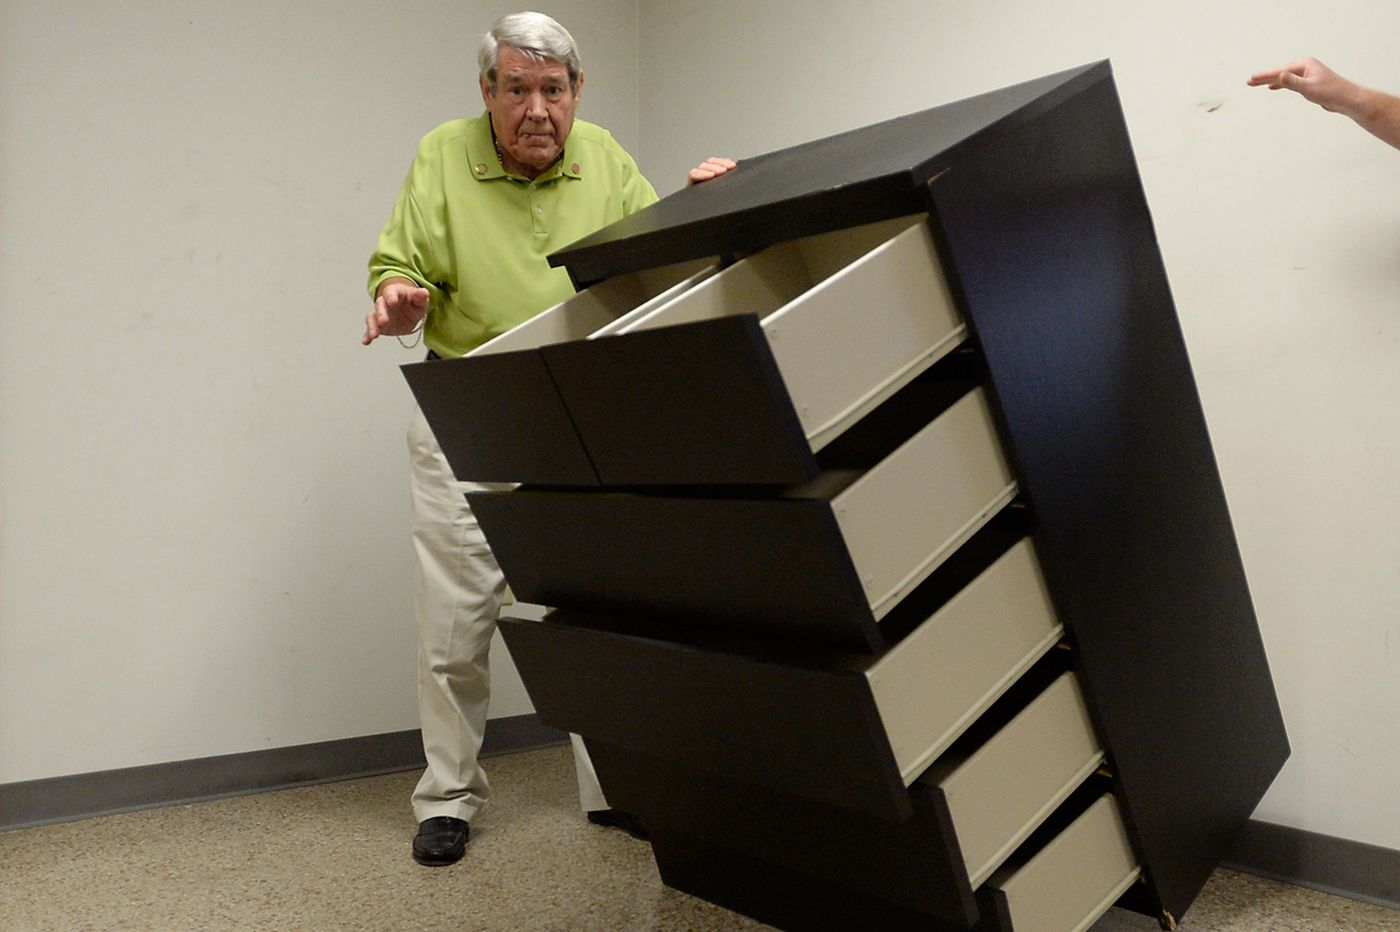 Inquirer sues safety agency for records on deadly Ikea dresser tip-overs